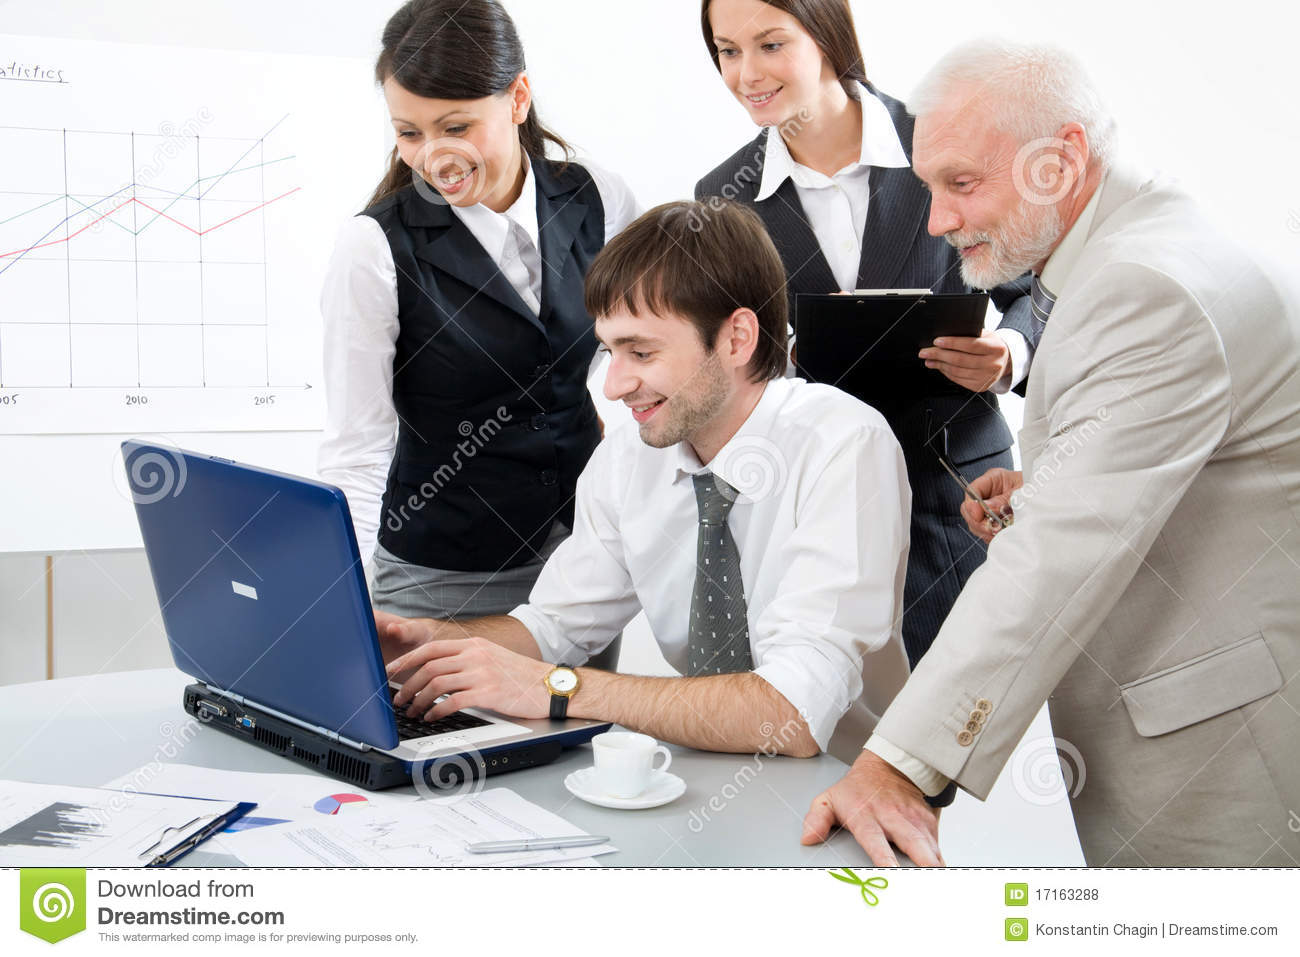 Business People Royalty Free Stock Photos - Image: 17163288: dreamstime.com/royalty-free-stock-photos-business-people-image17163288